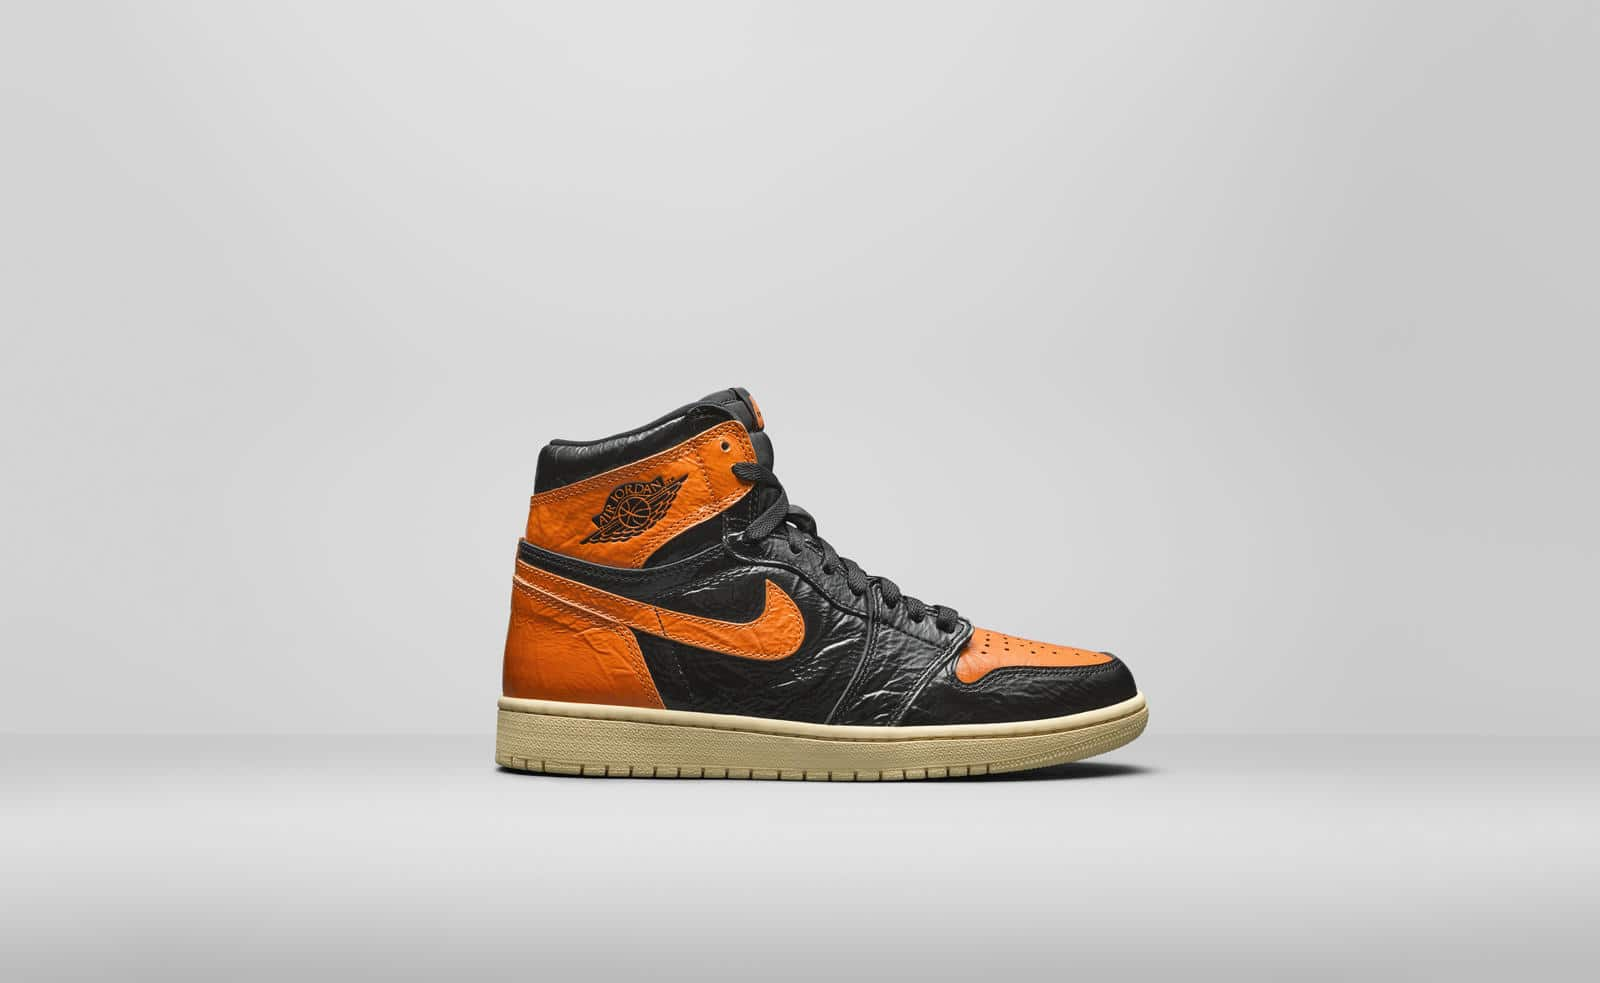 AIR JORDAN I HIGH OG BLACKORANGE 555088028A7RightLateralHR_90895